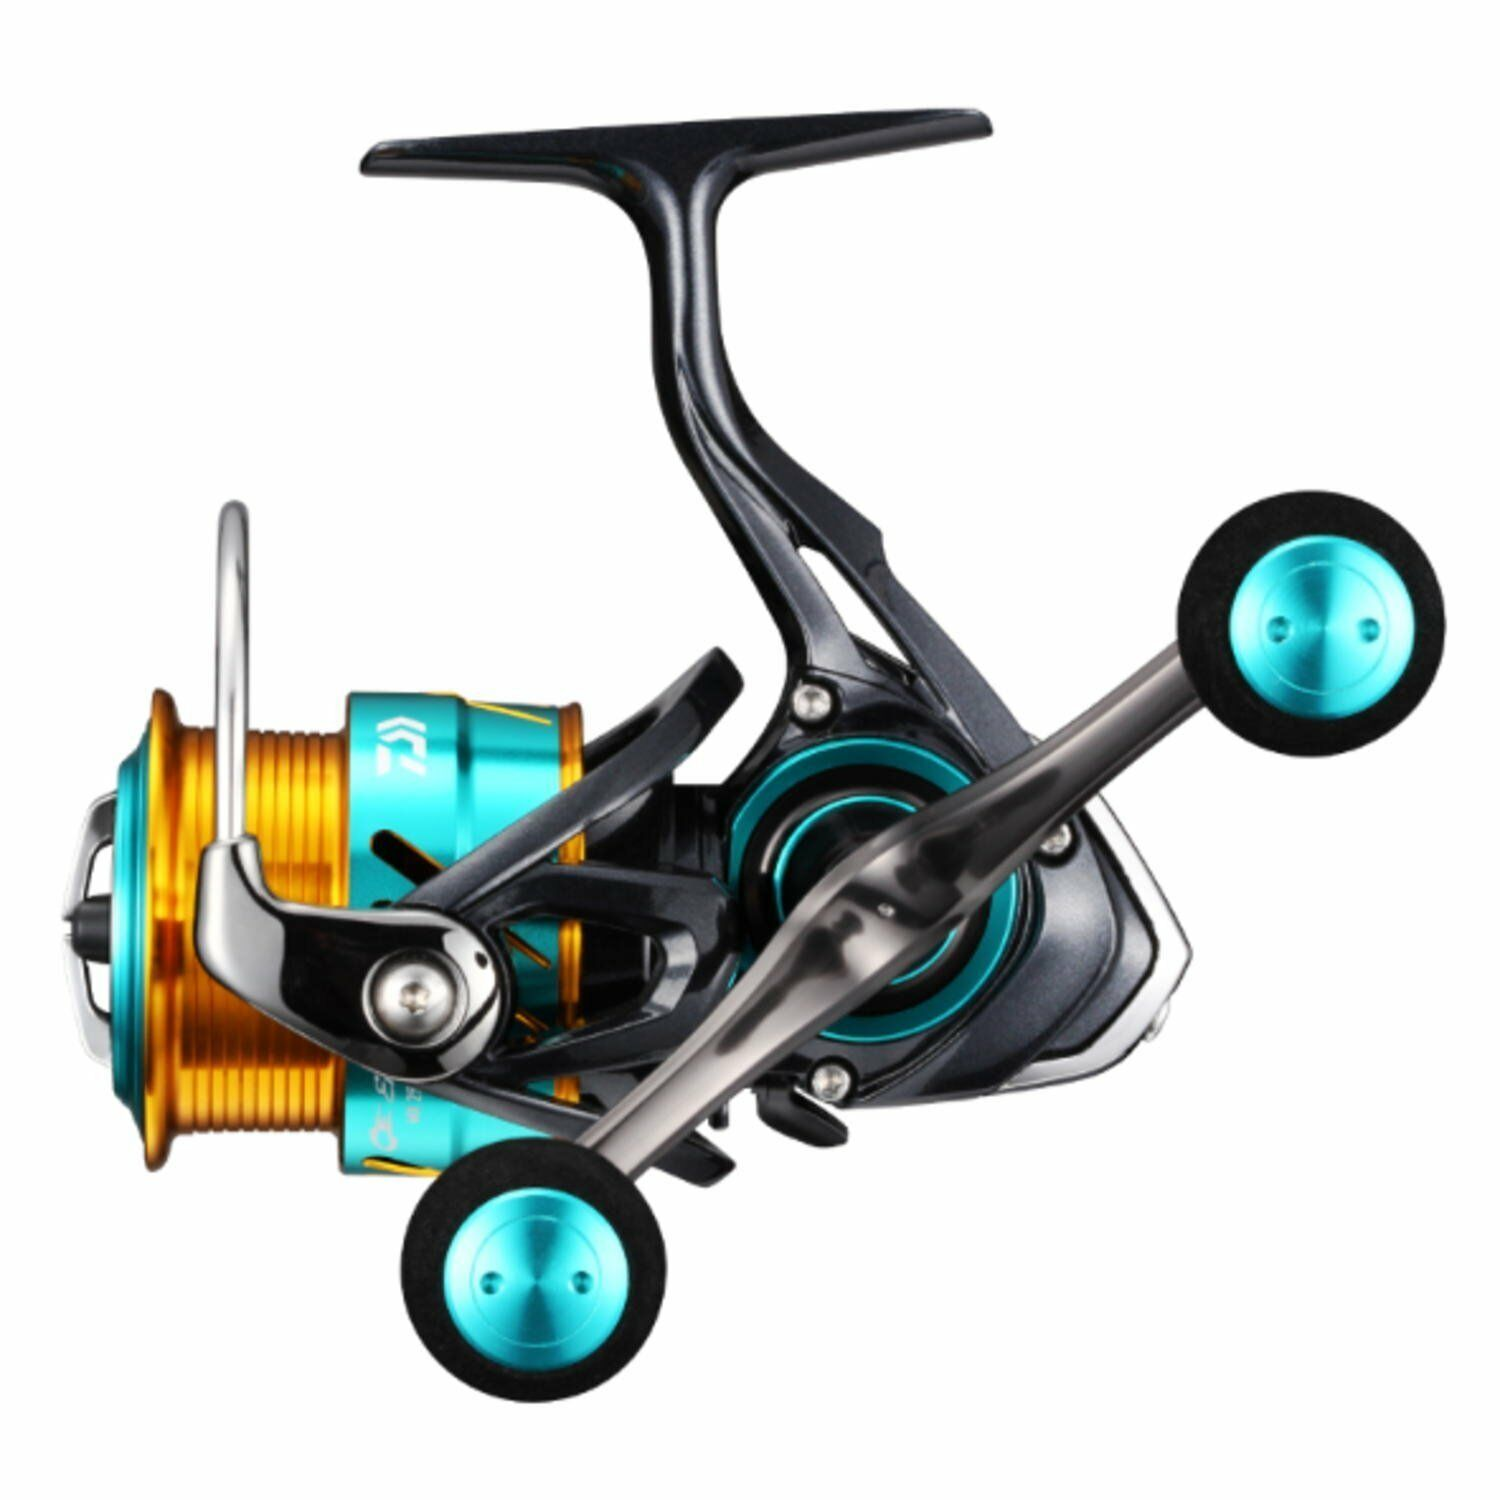 Daiwa Spinning Reel Eging 17 EMERALDAS MX 2508PE-DH from japan【Brand New in Box】